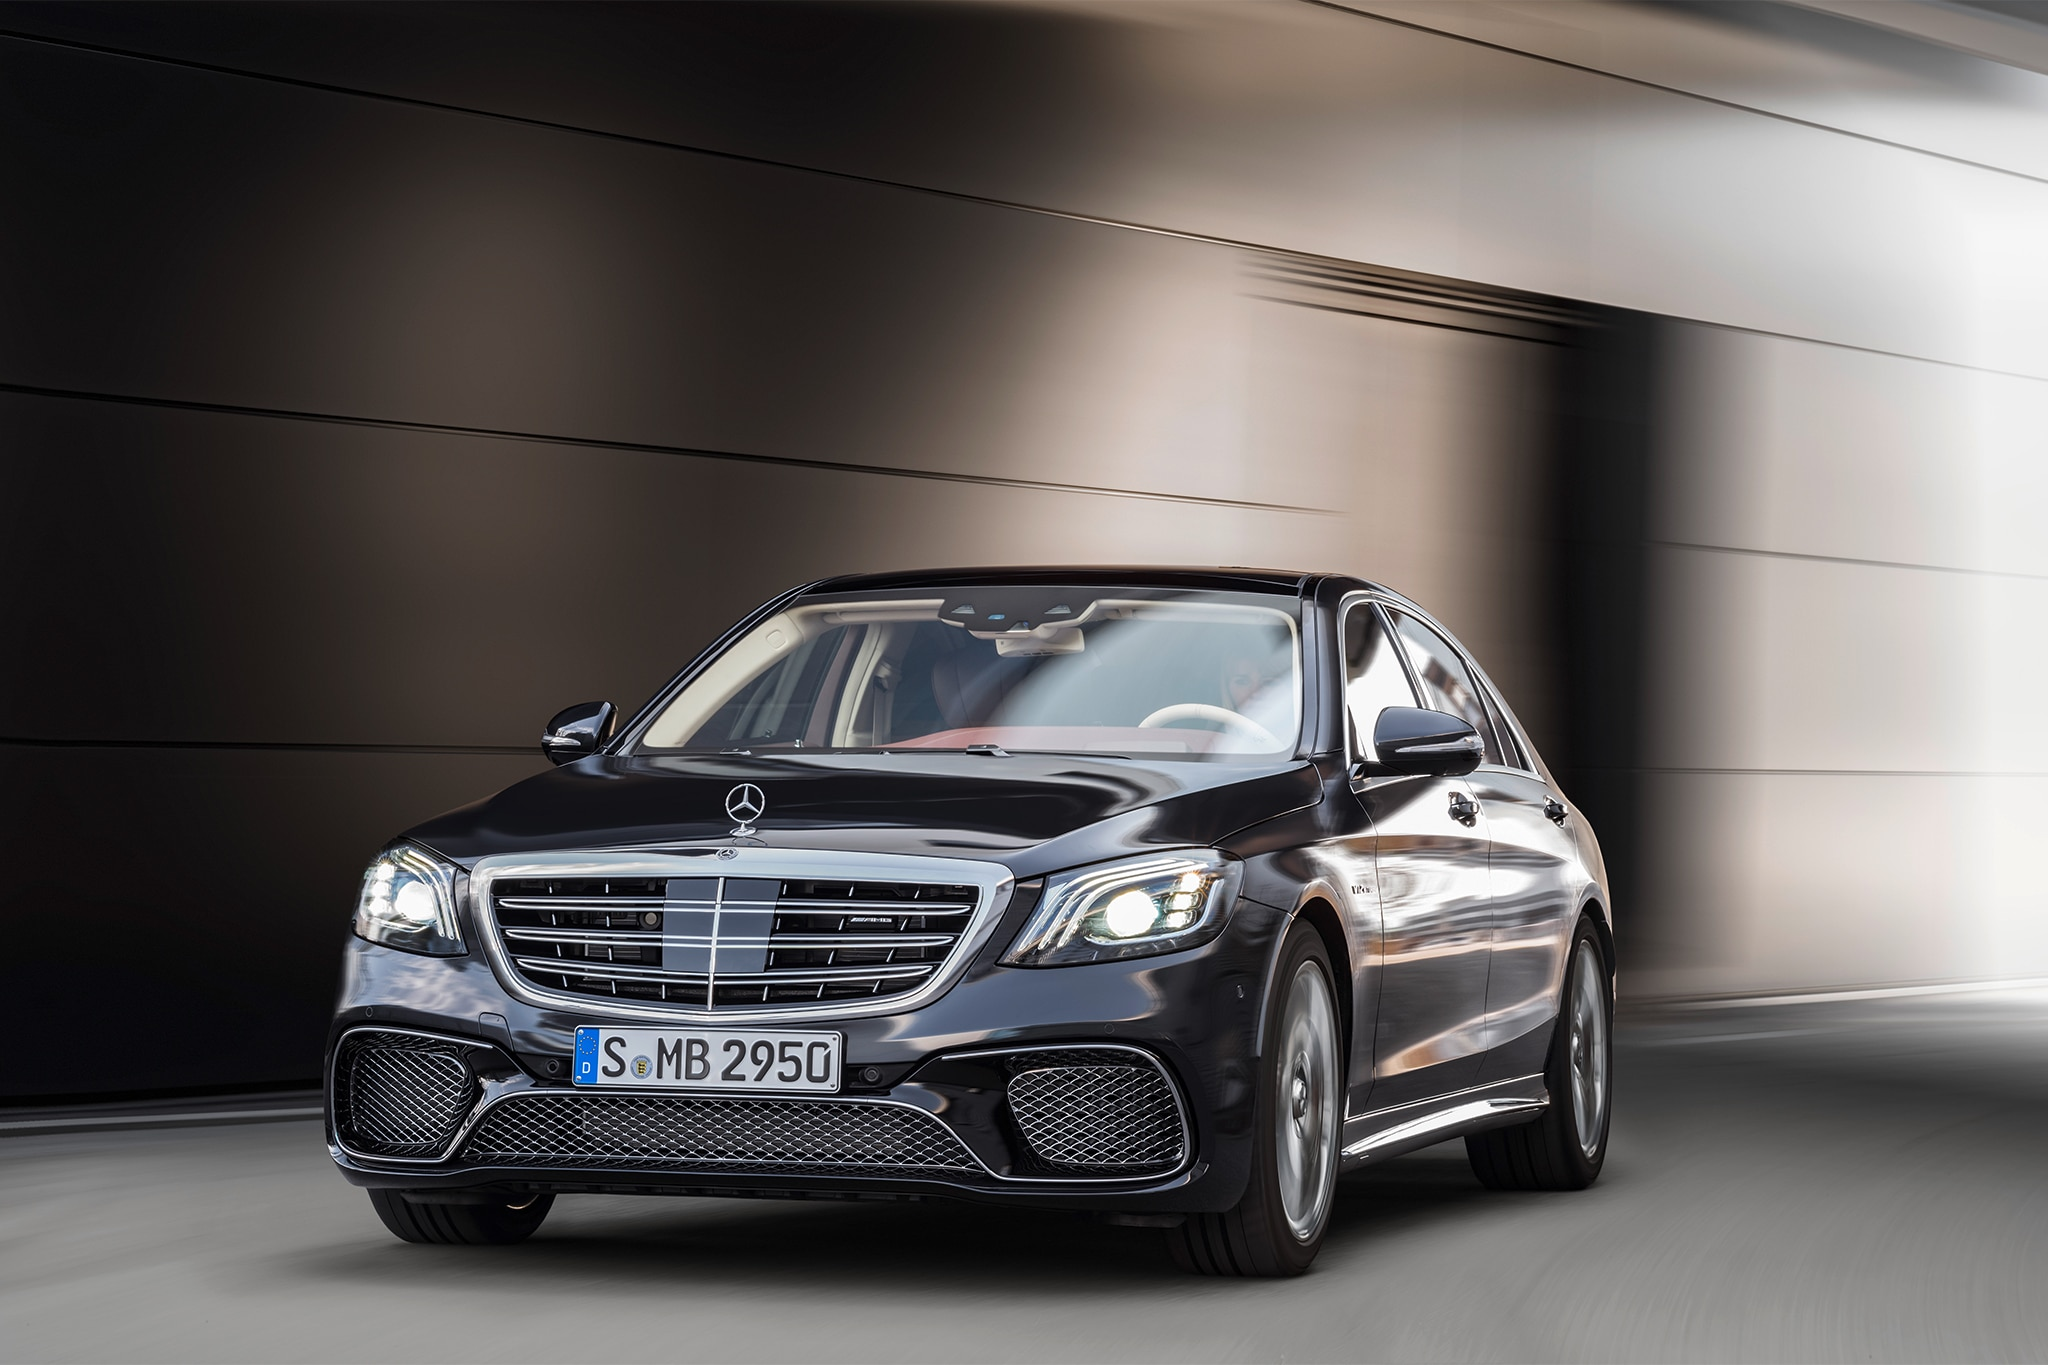 2018 Mercedes AMG S65 front three quarter in motion 03